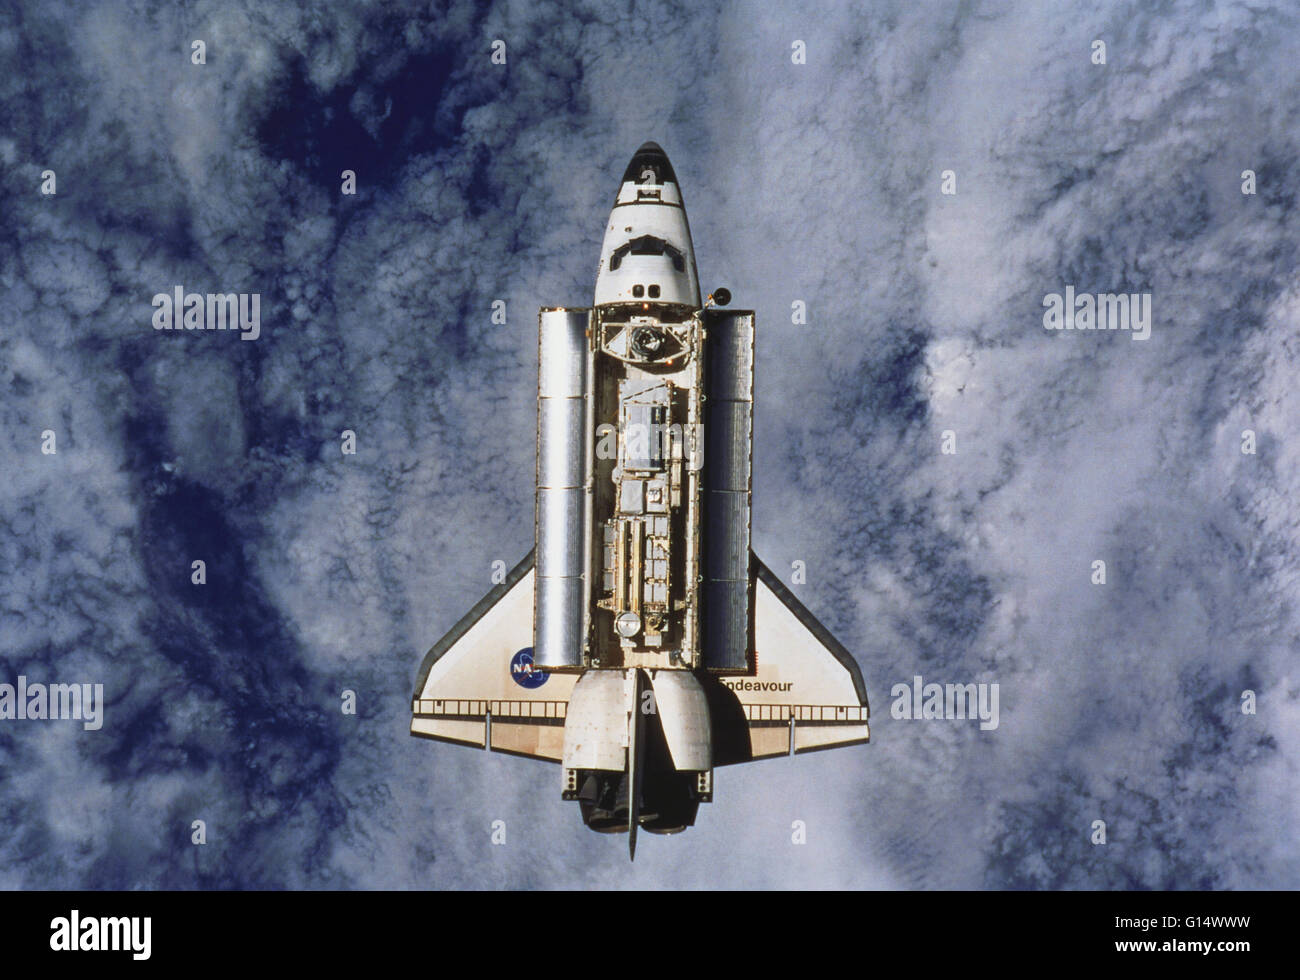 The purpose of the space shuttle